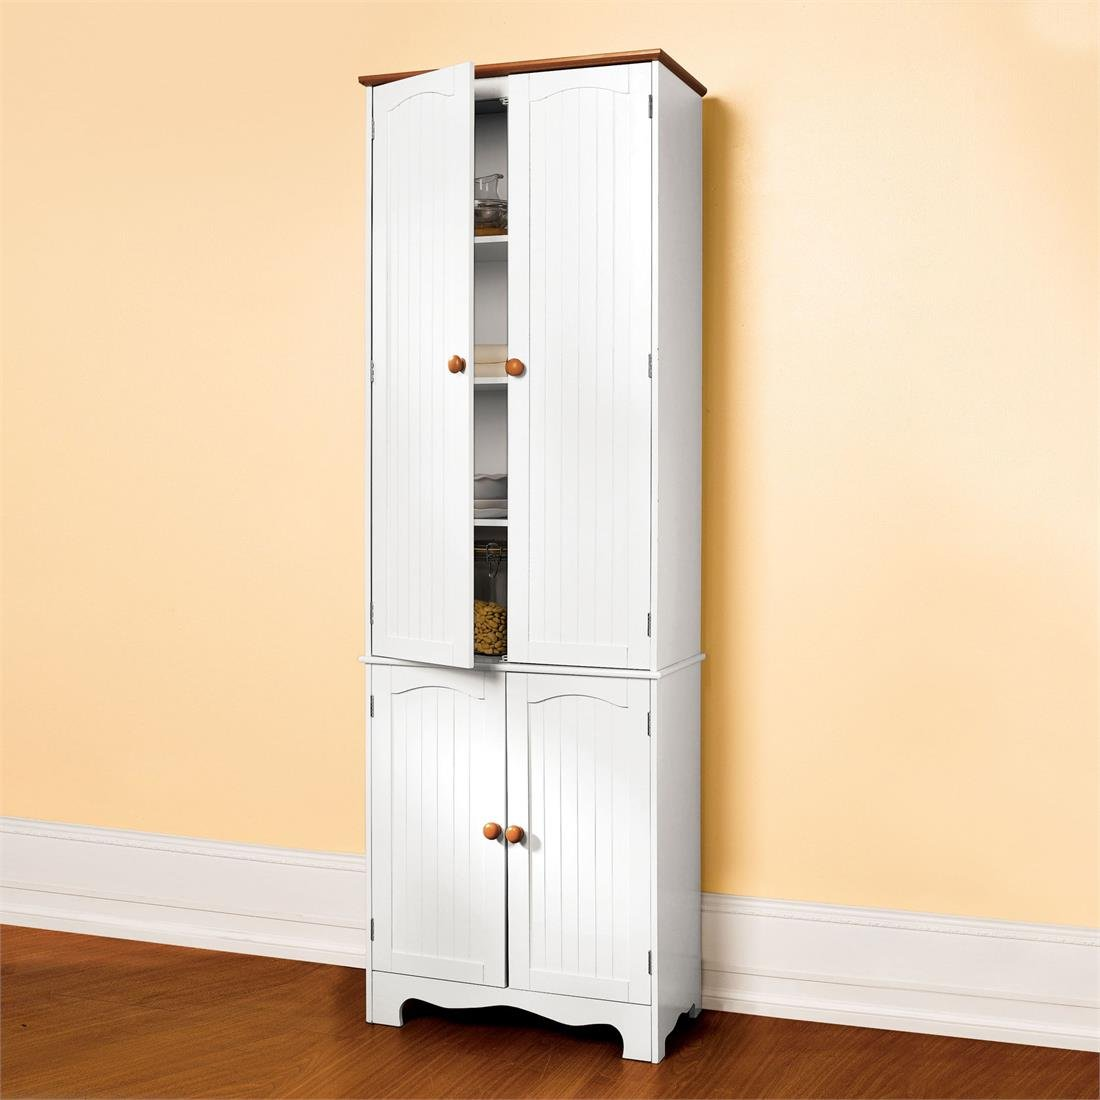 amazon kitchen cabinets redesign my pantry cabinet door with tall narrow